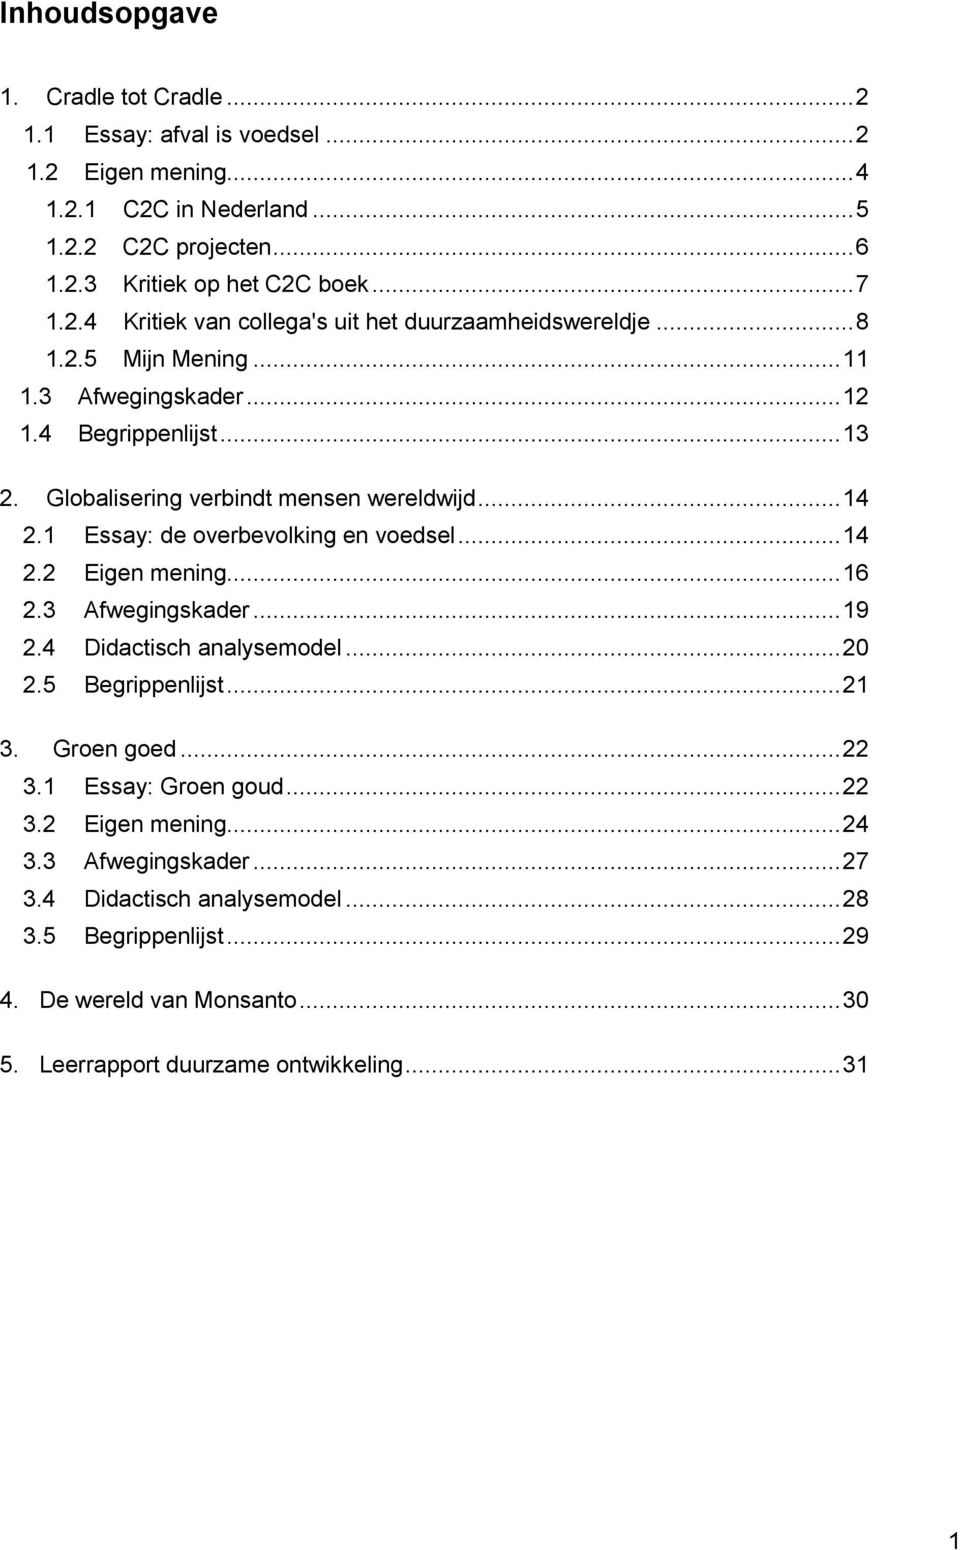 duurzame ontwikkeling thesis Aardrijkskunde - download as pdf file (pdf), text file (txt) or read online.